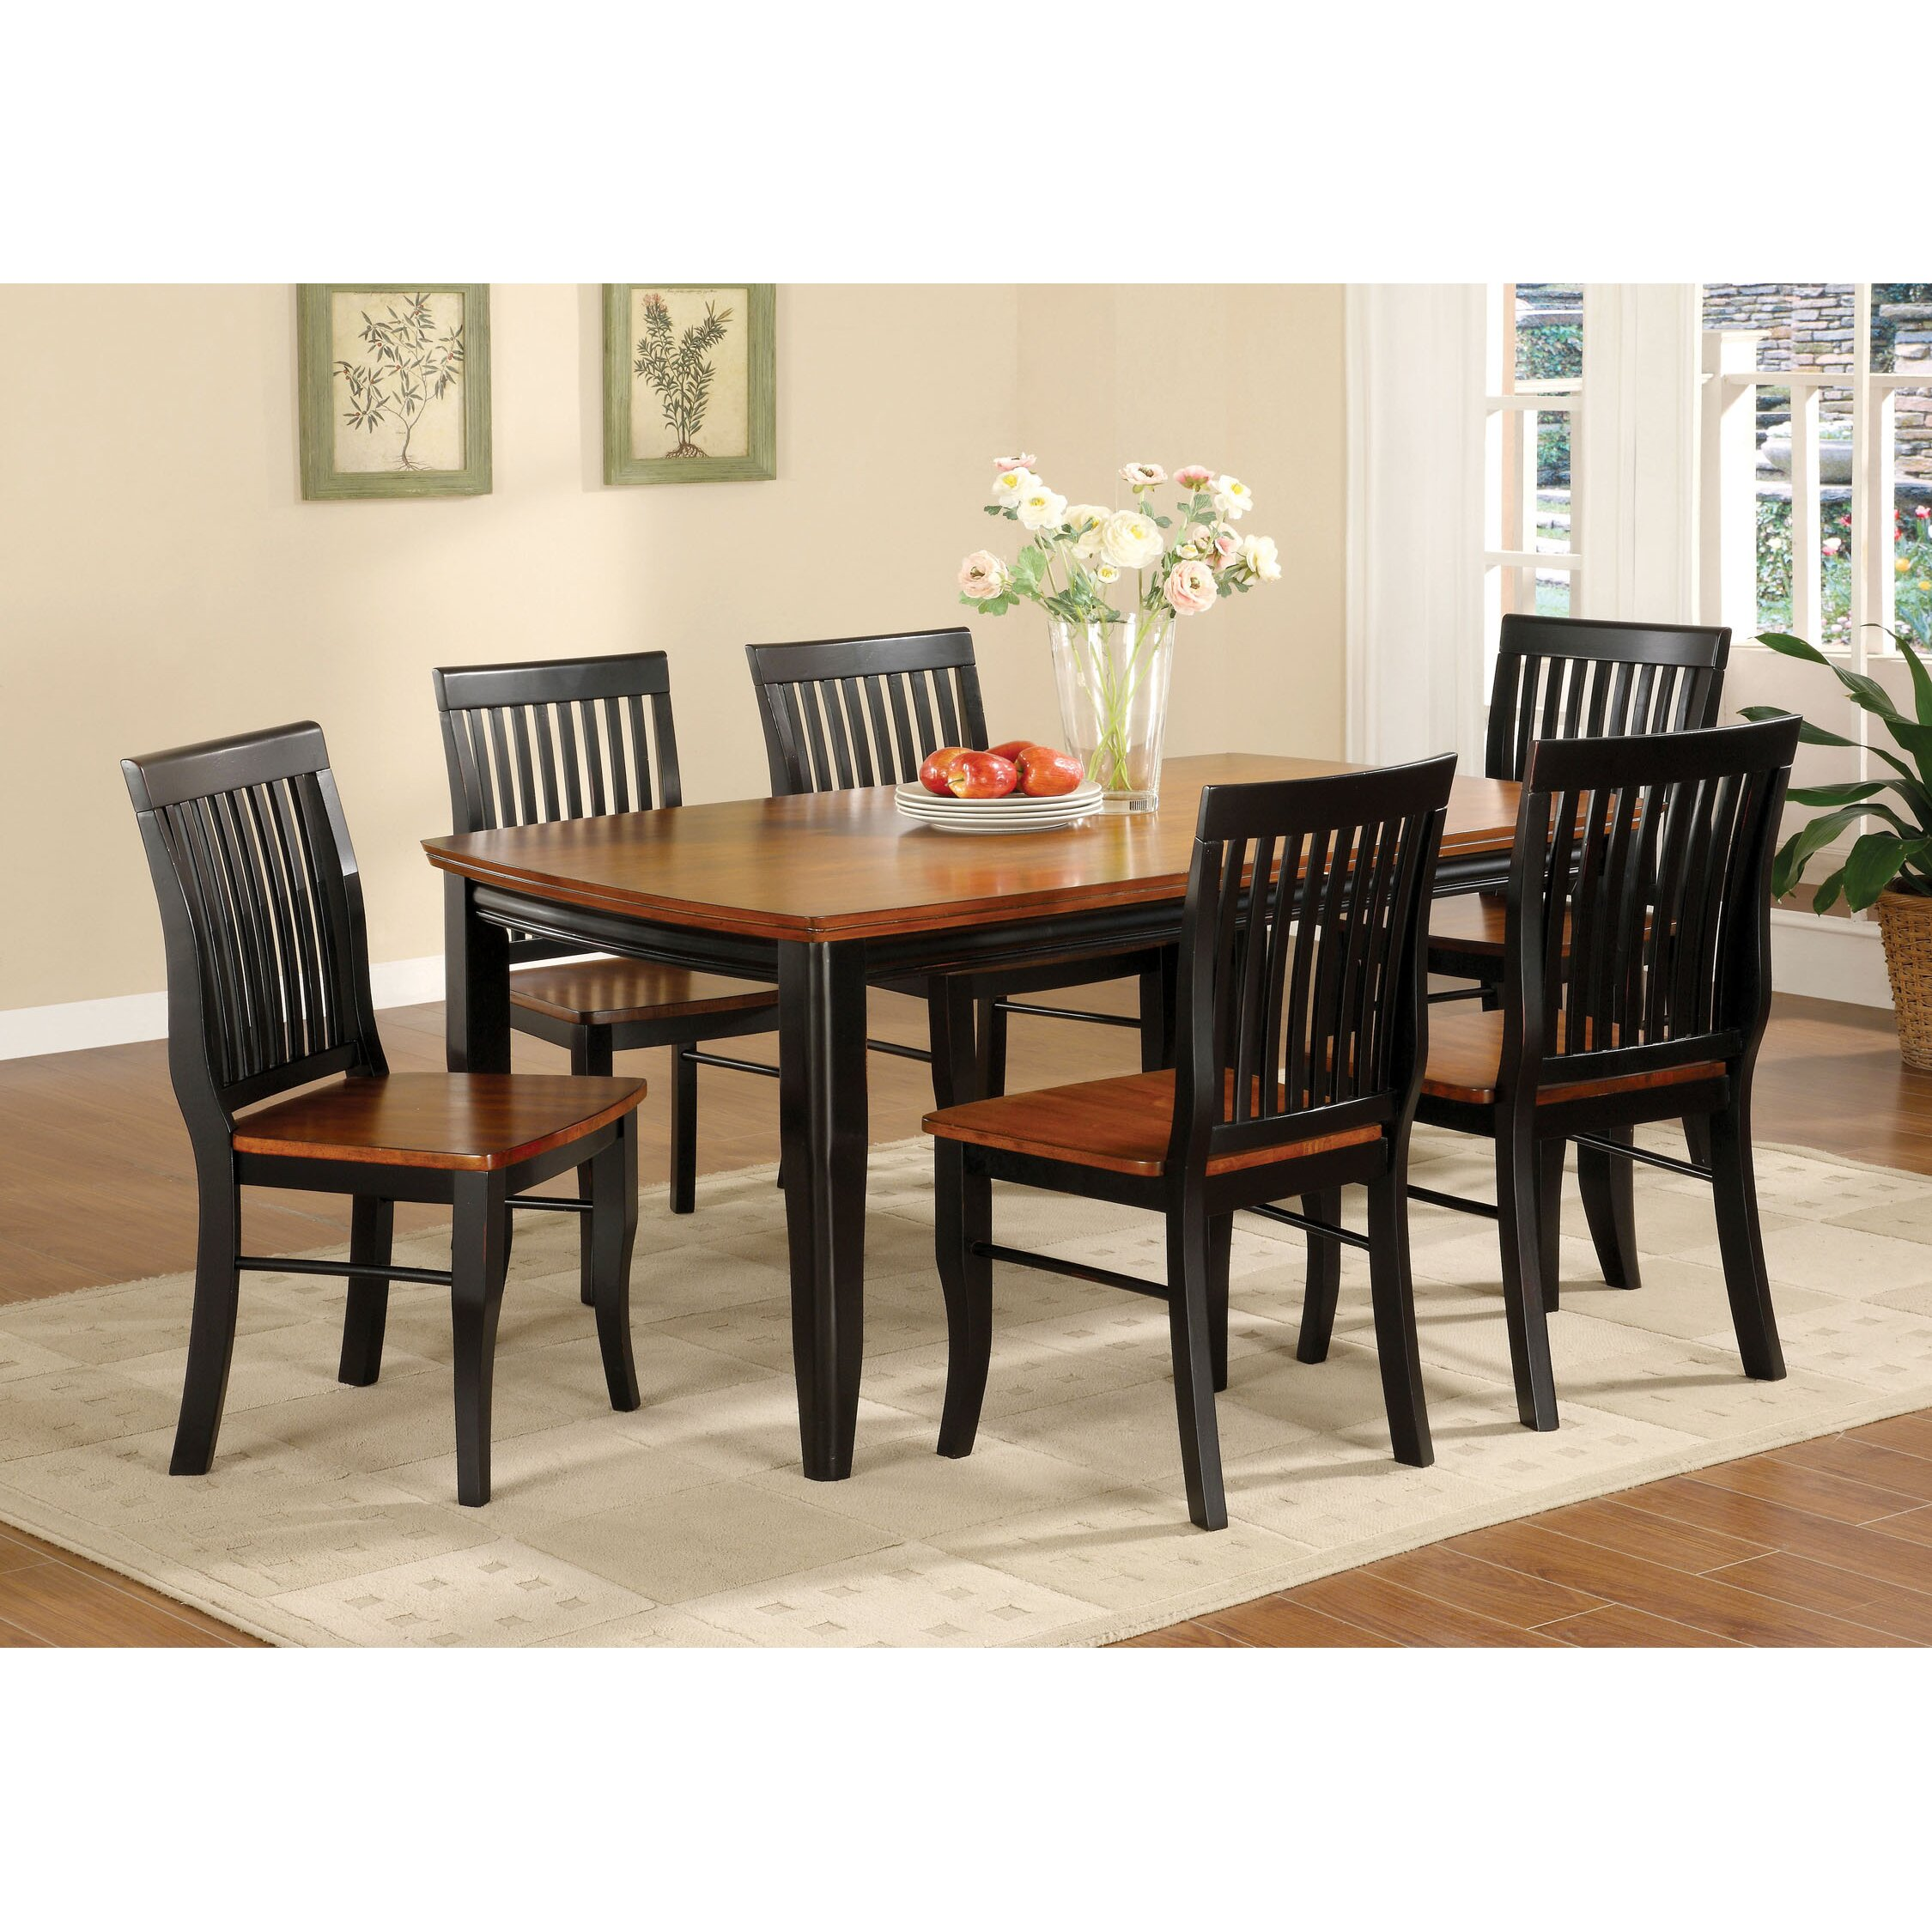 Hokku Designs Pedrina 7 Piece Dining Set & Reviews